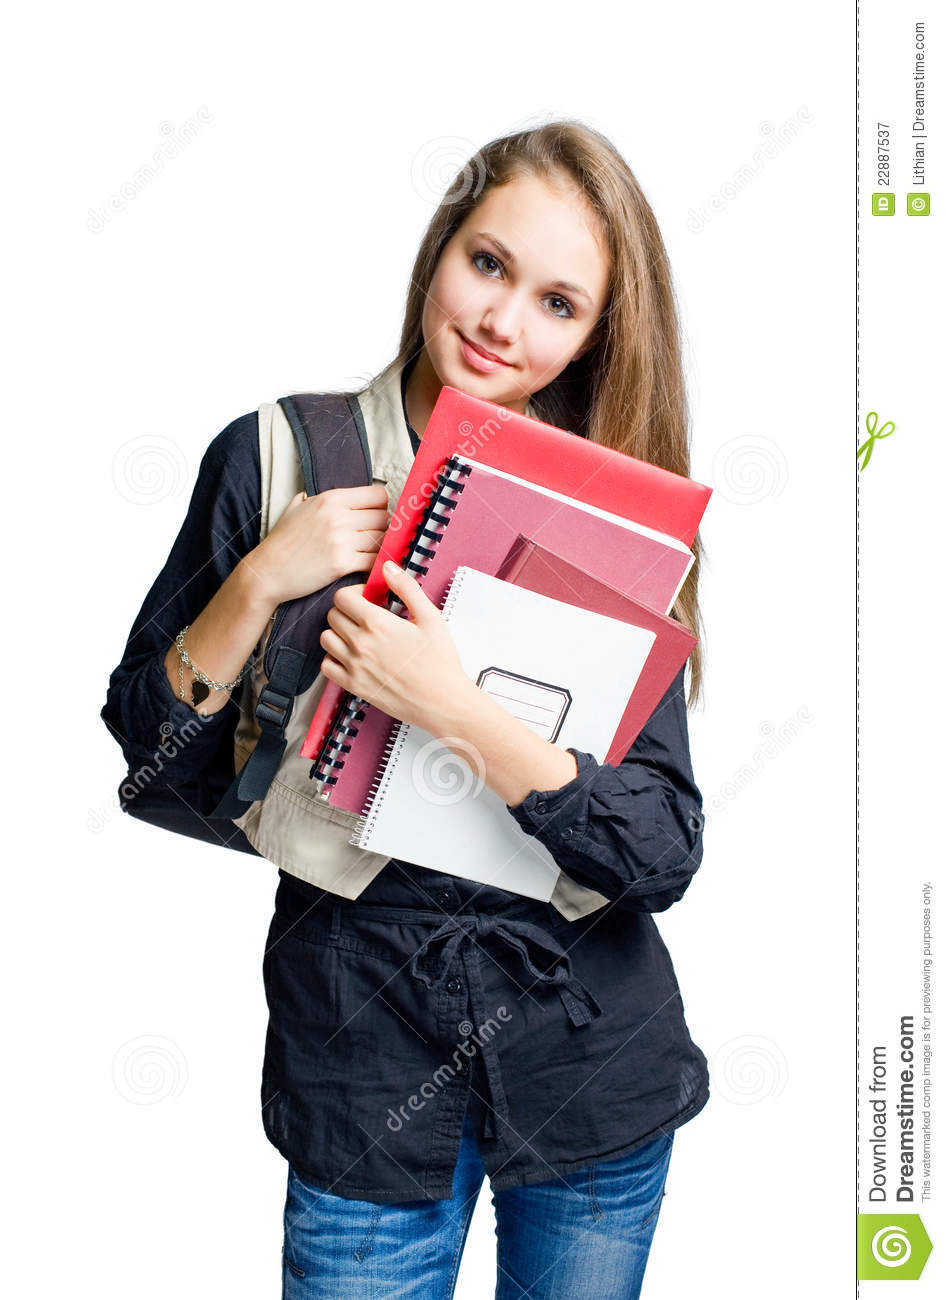 Charming young student girl royalty free stock photography image 22887537 - Charming teenage girls image ...